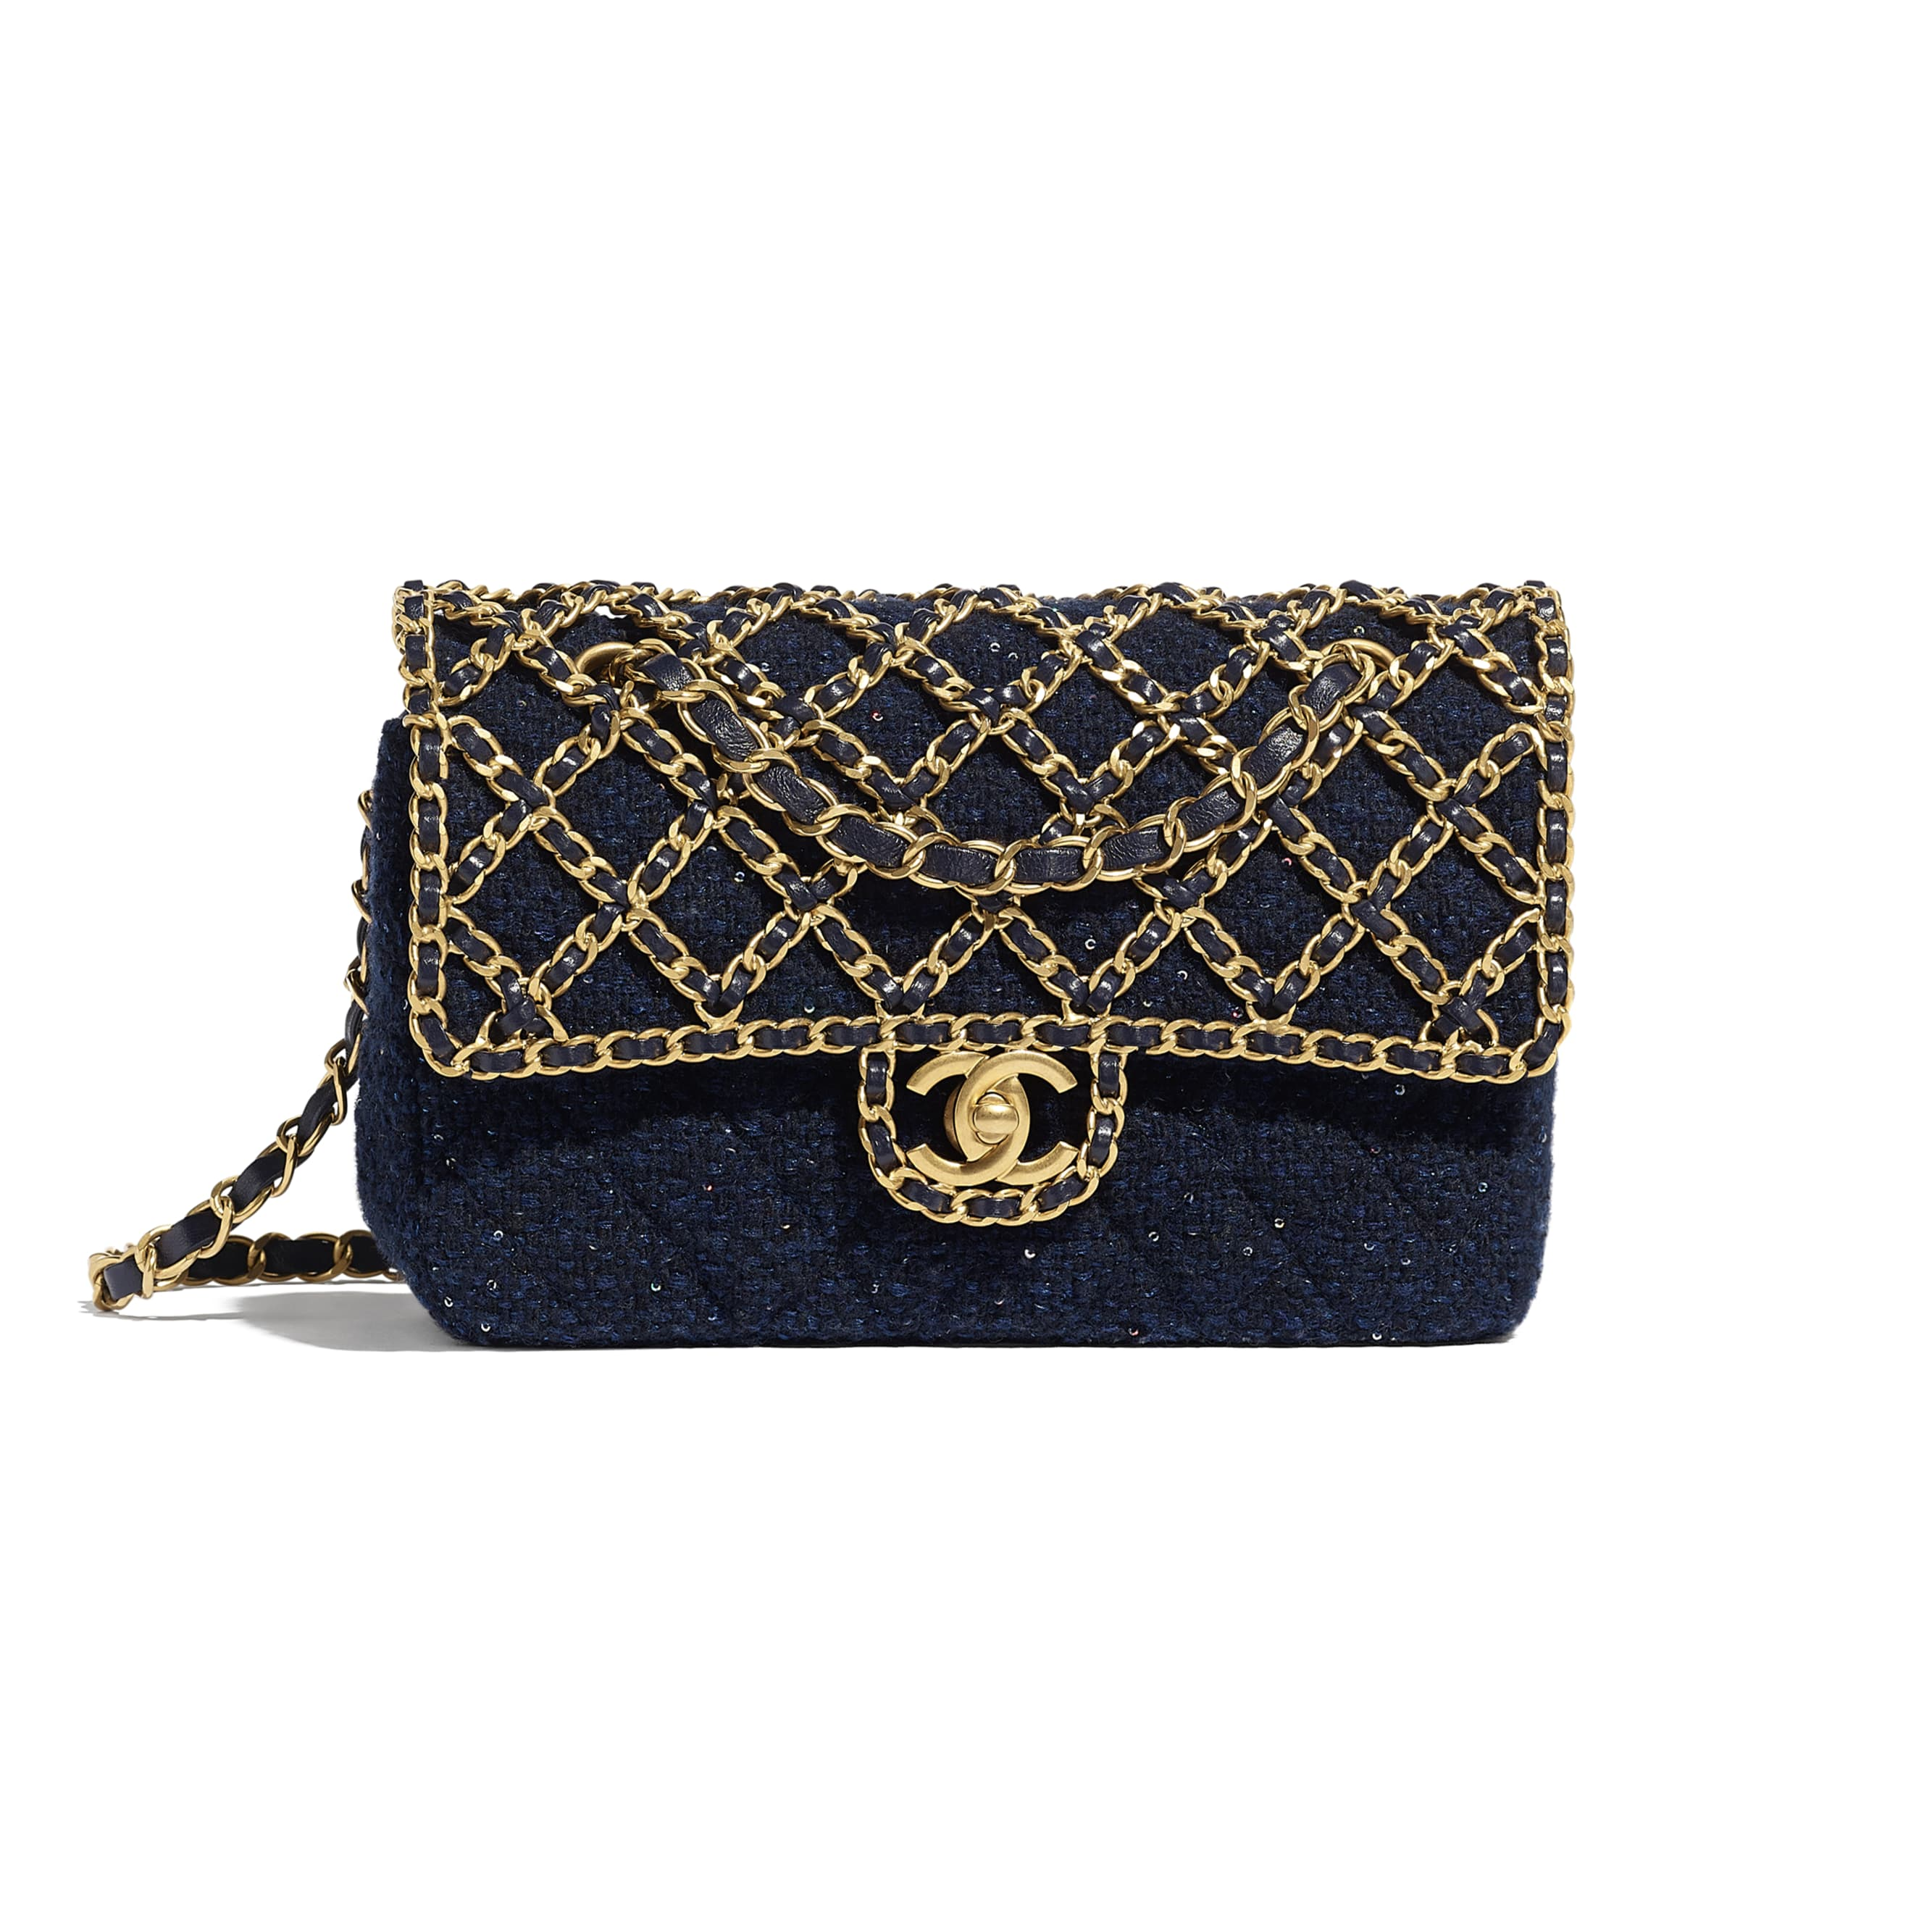 Classic Handbag - Navy Blue - Tweed, Sequins & Gold-Tone Metal - CHANEL - Default view - see standard sized version